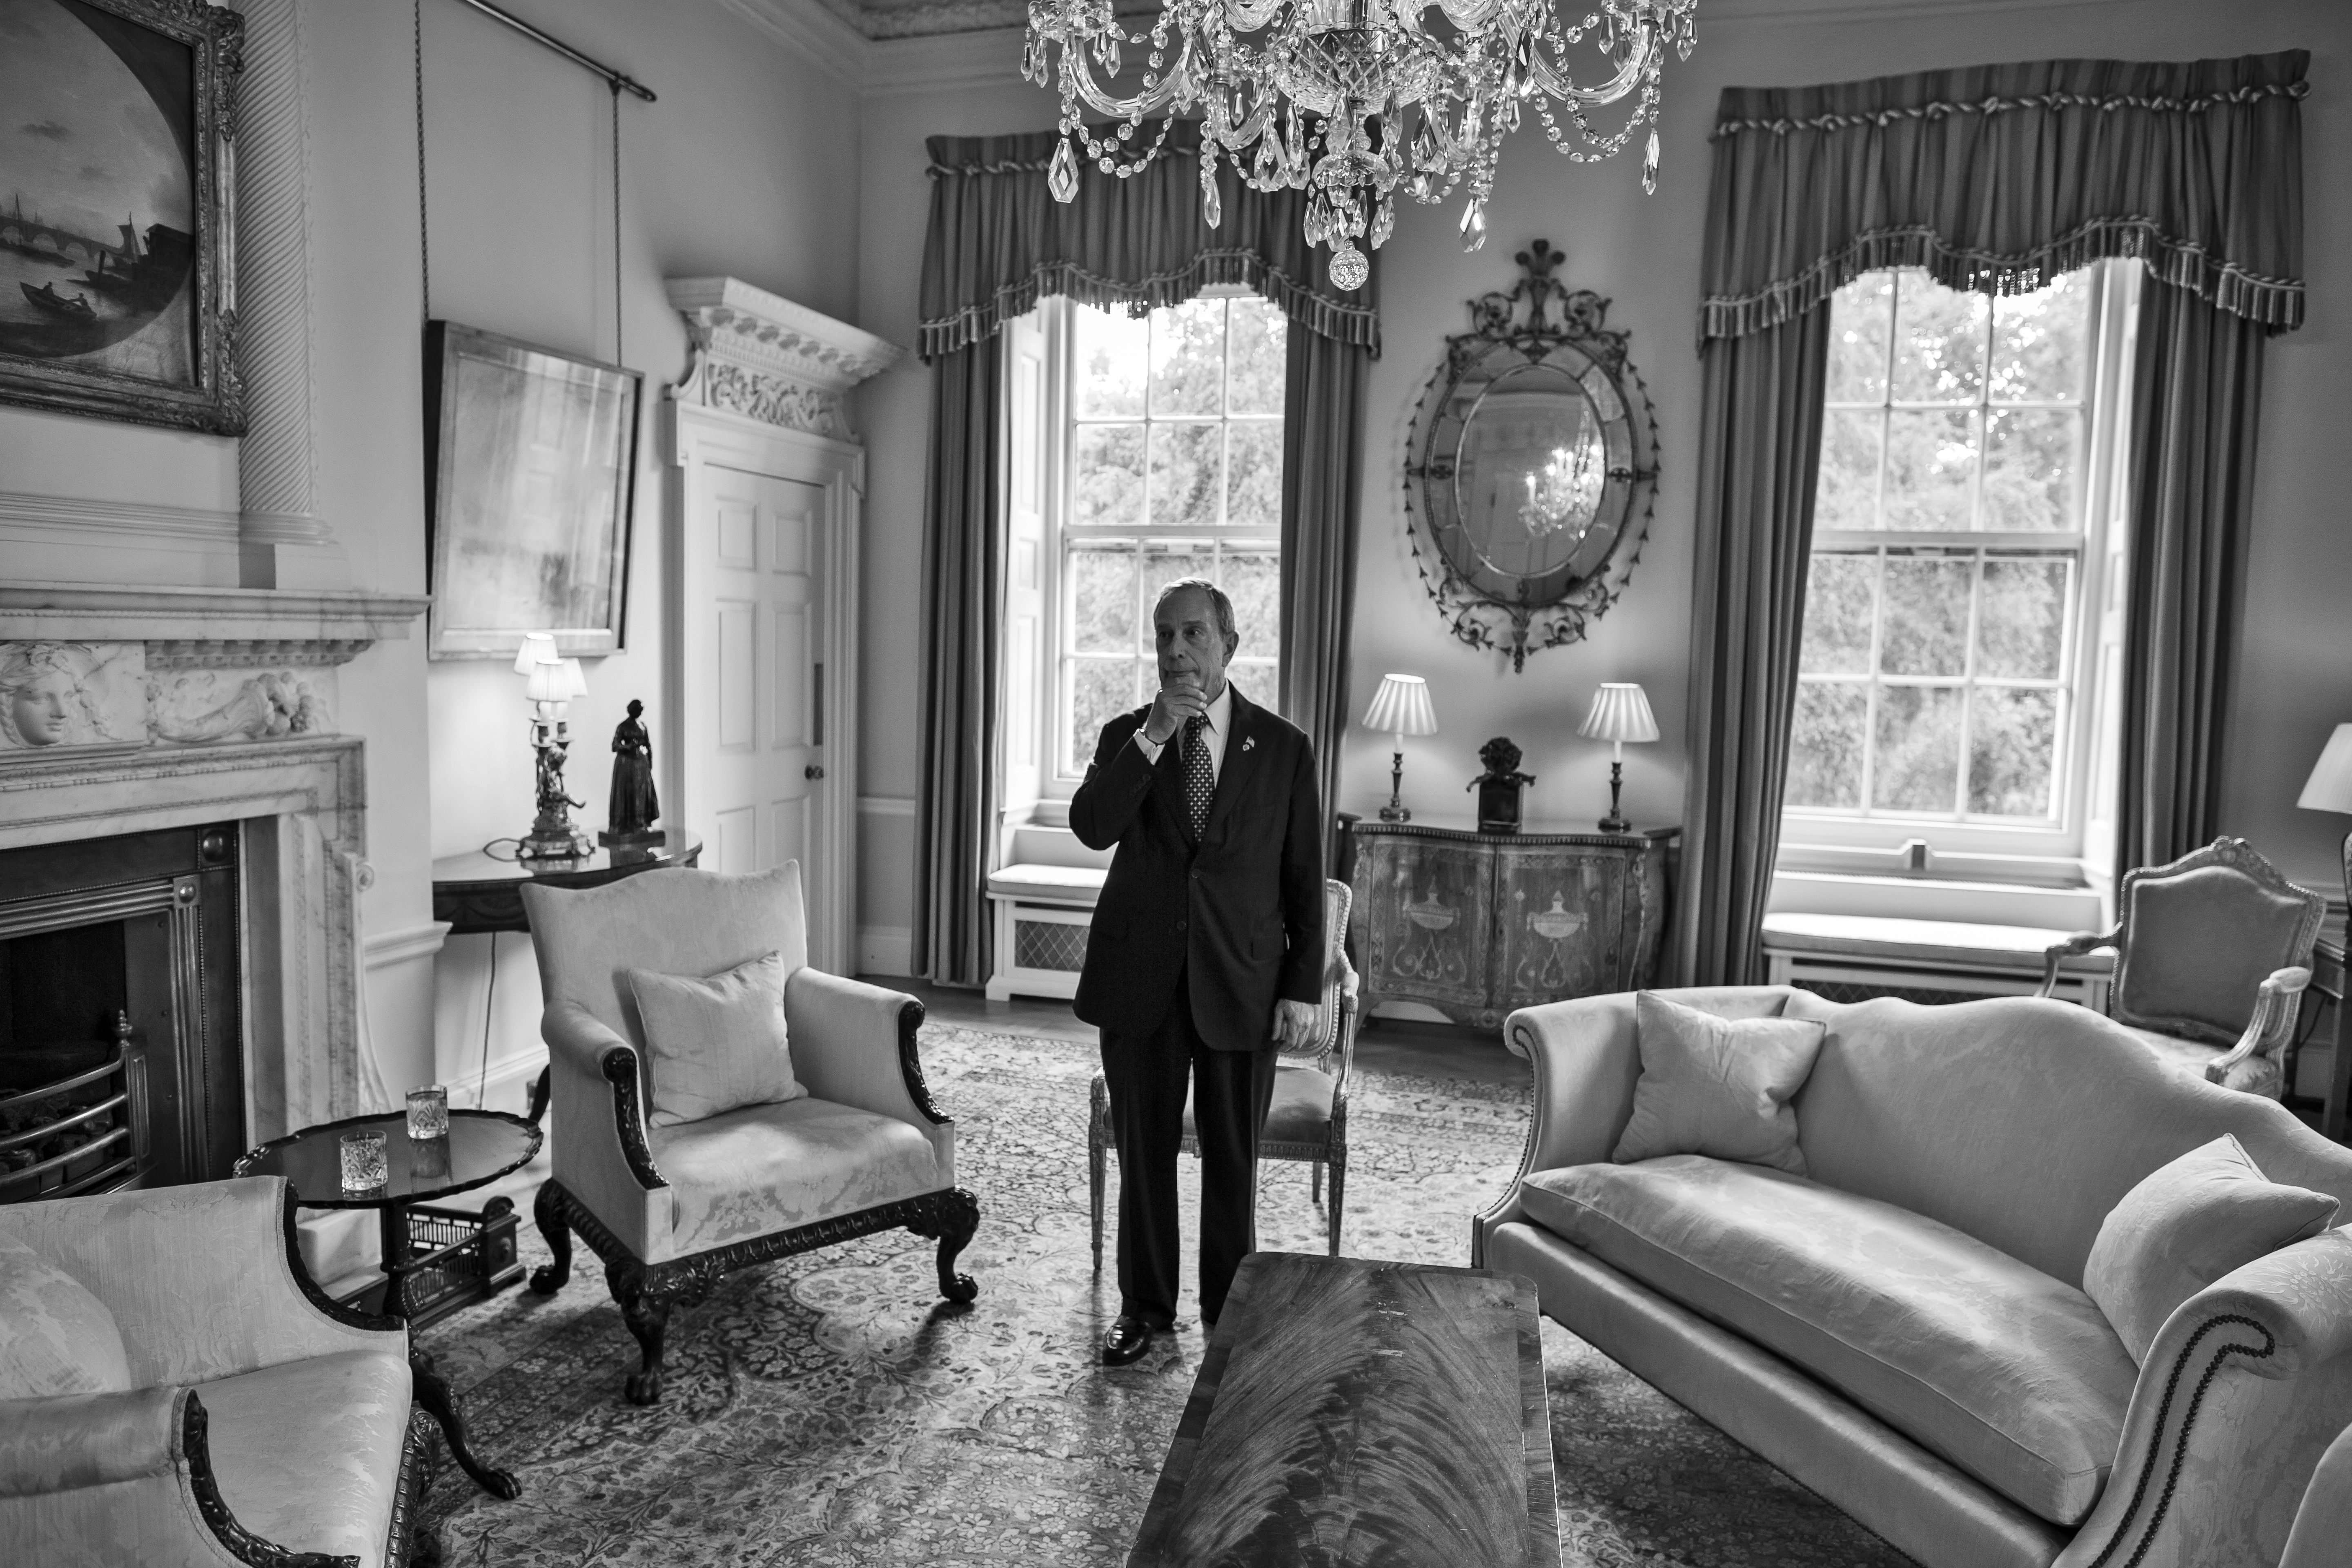 With Cameron running a few minutes late, Bloomberg is left alone to wait in one of Downing street's ornate rooms.